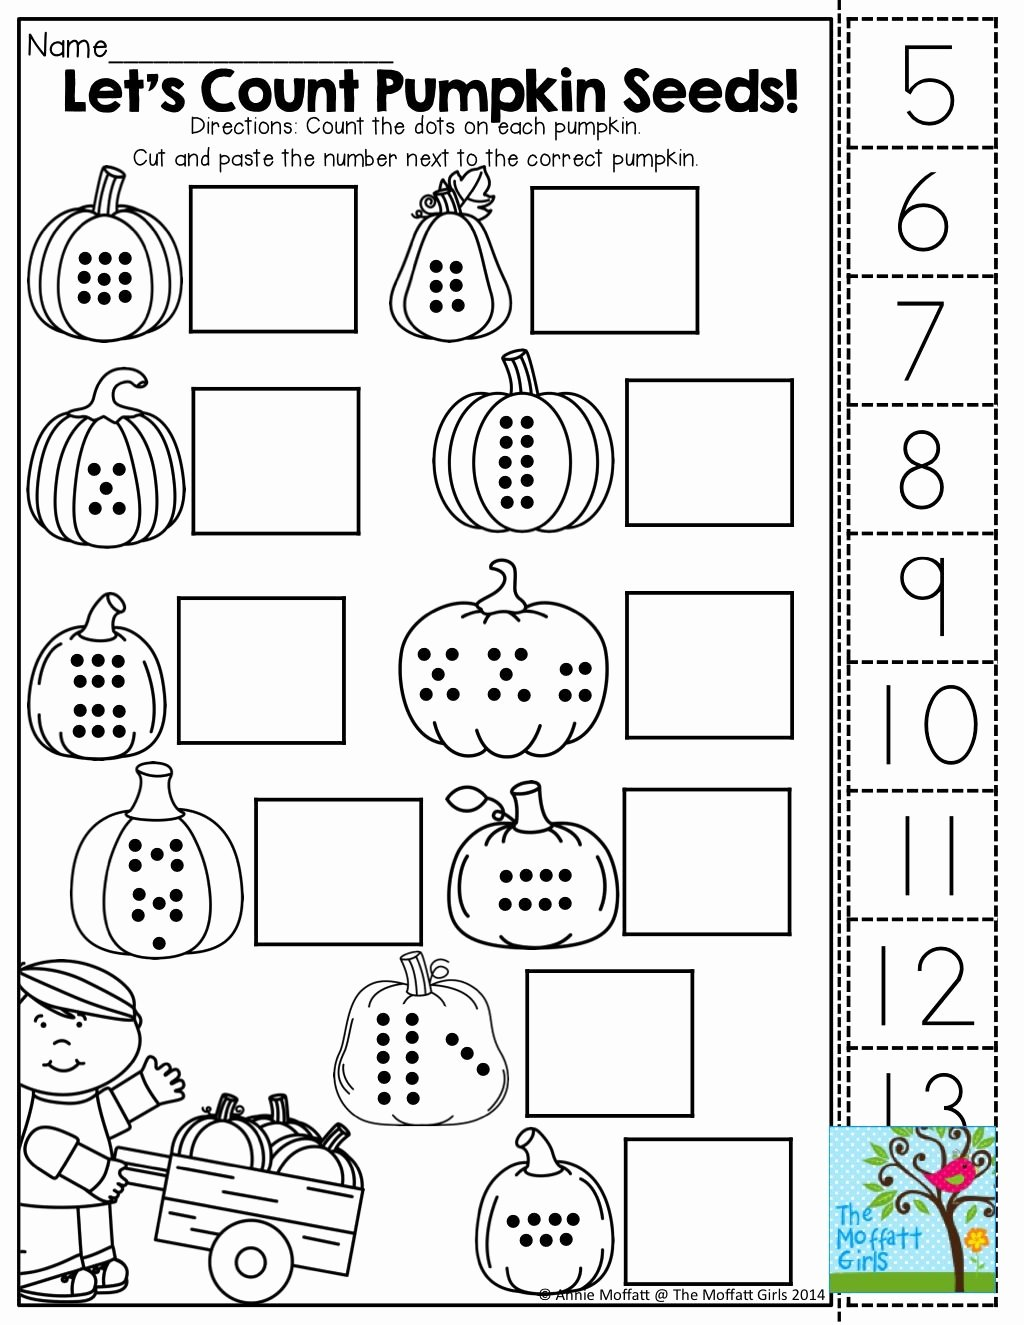 Fun Worksheets for Preschoolers Printable Pin On October